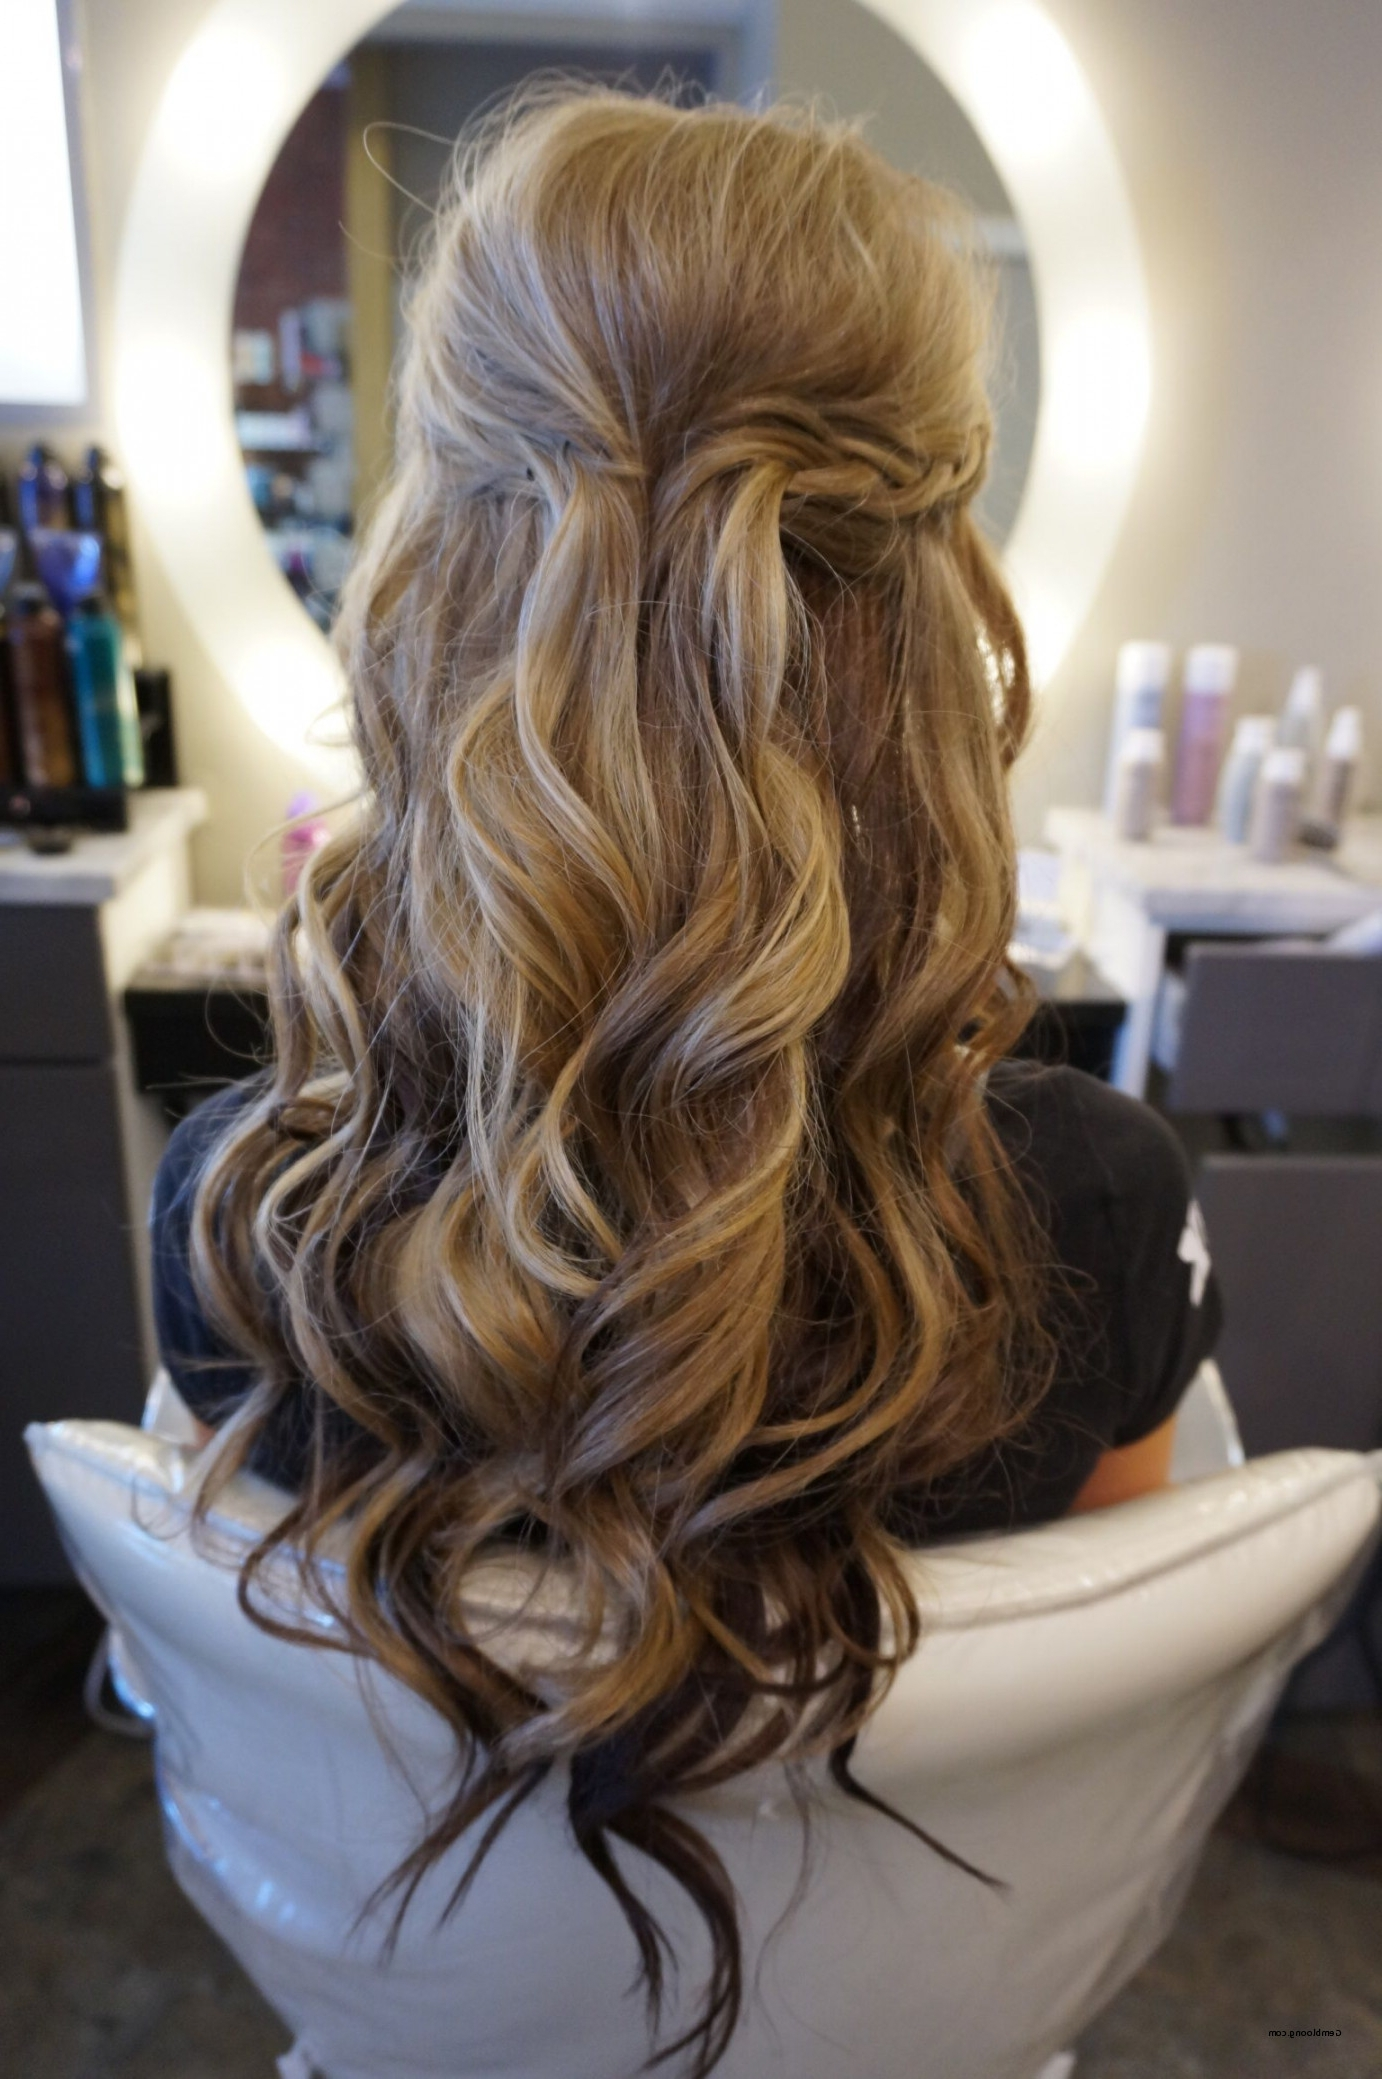 Wedding Hairstyles Loose Curls Unique Long Hair With Loose Curls For Recent Hair Half Up Half Down Wedding Hairstyles Long Curly (View 4 of 15)